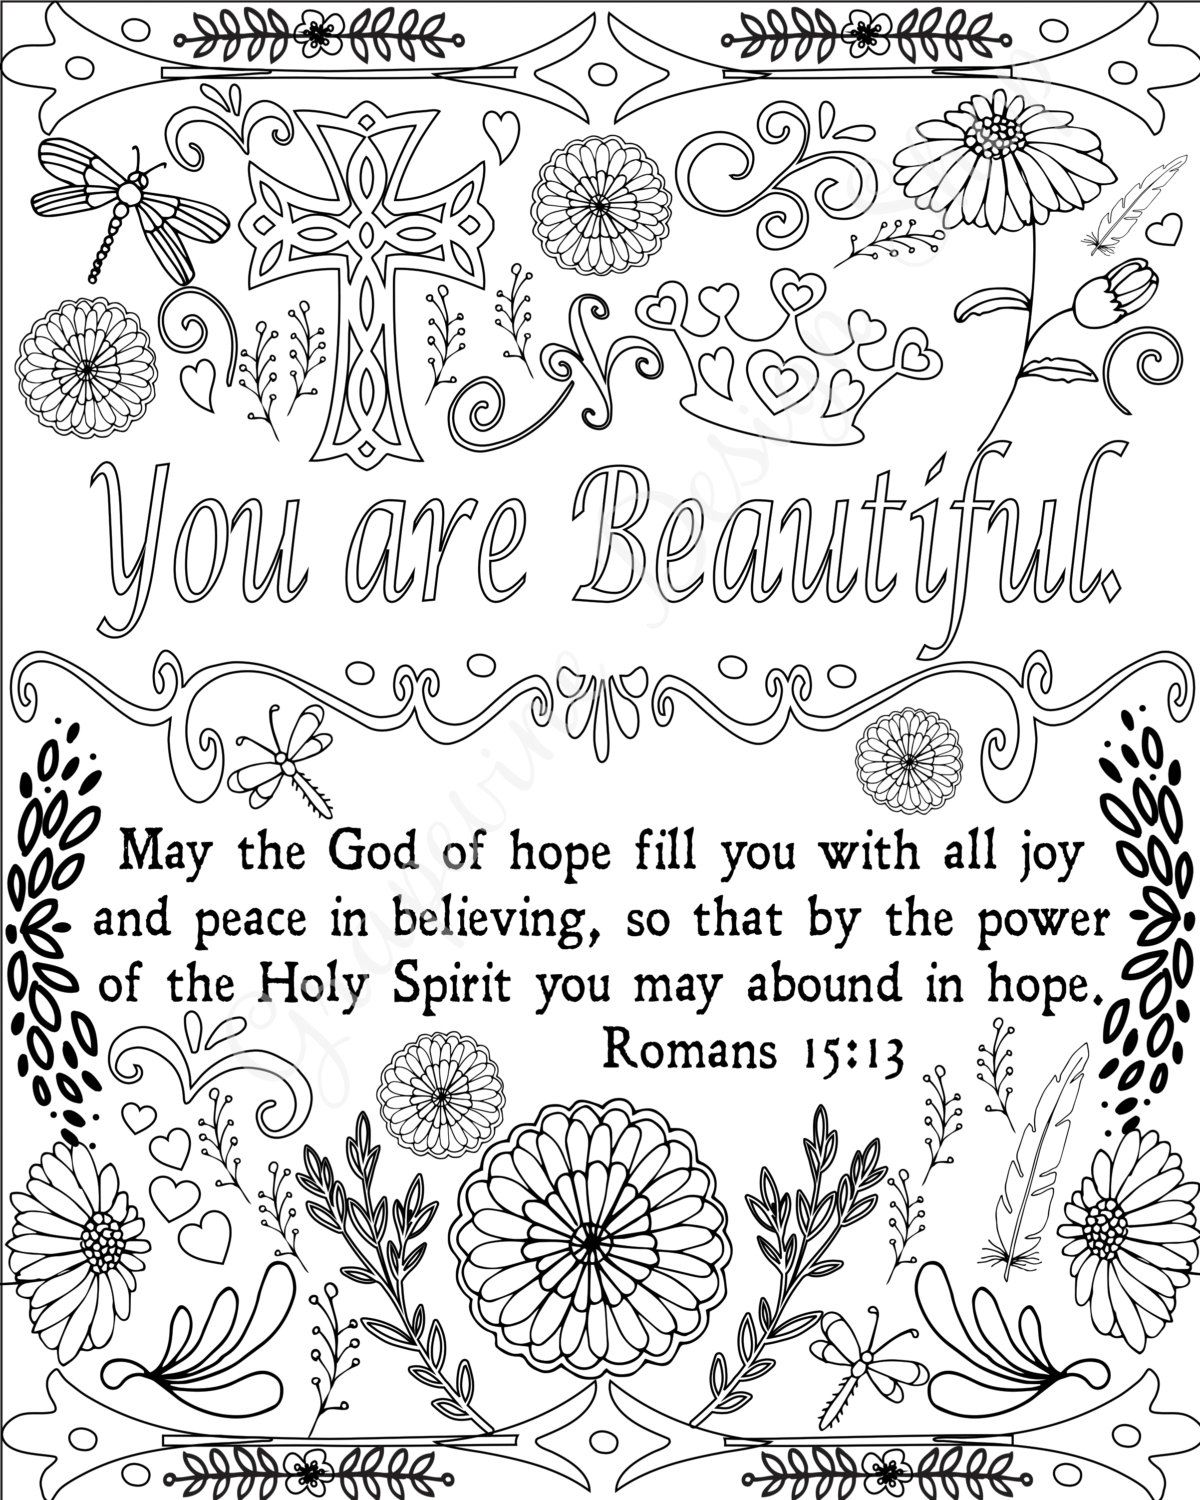 bible verse christian coloring pages best free printable scripture coloring pages for adults bible verse coloring pages christian